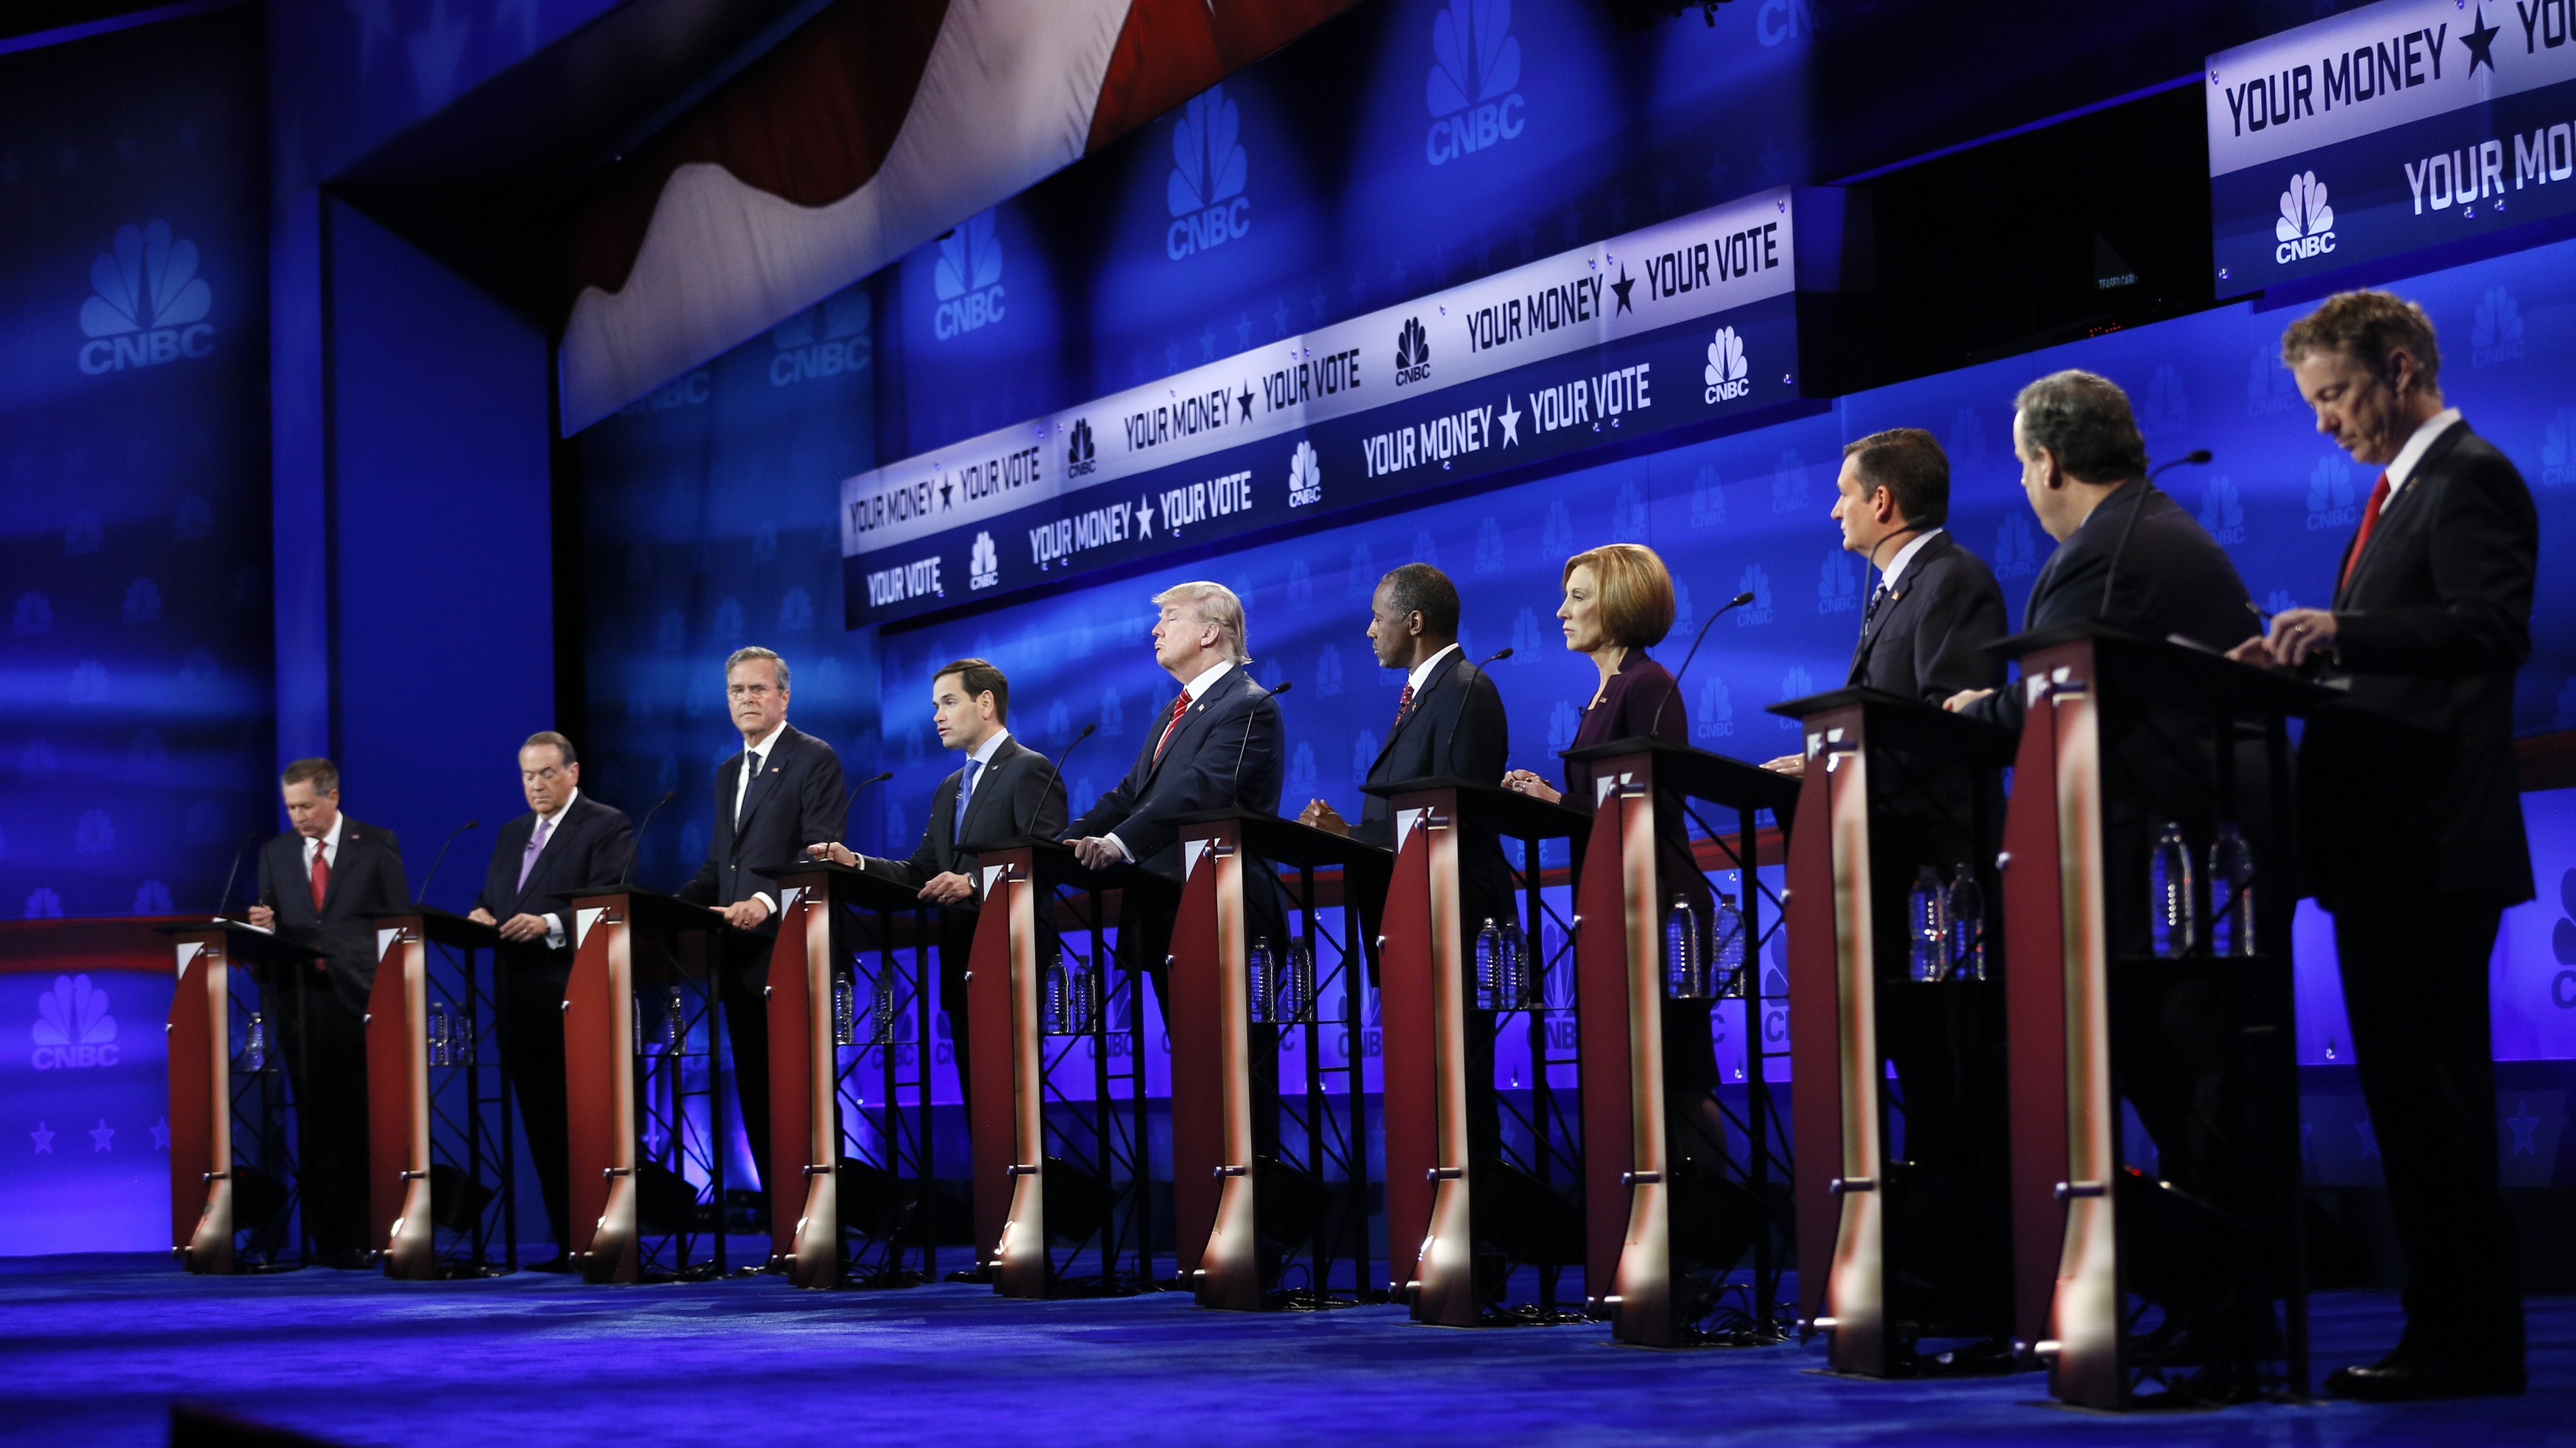 Republican candidates line the stage at the CNBC debate, Oct. 30.